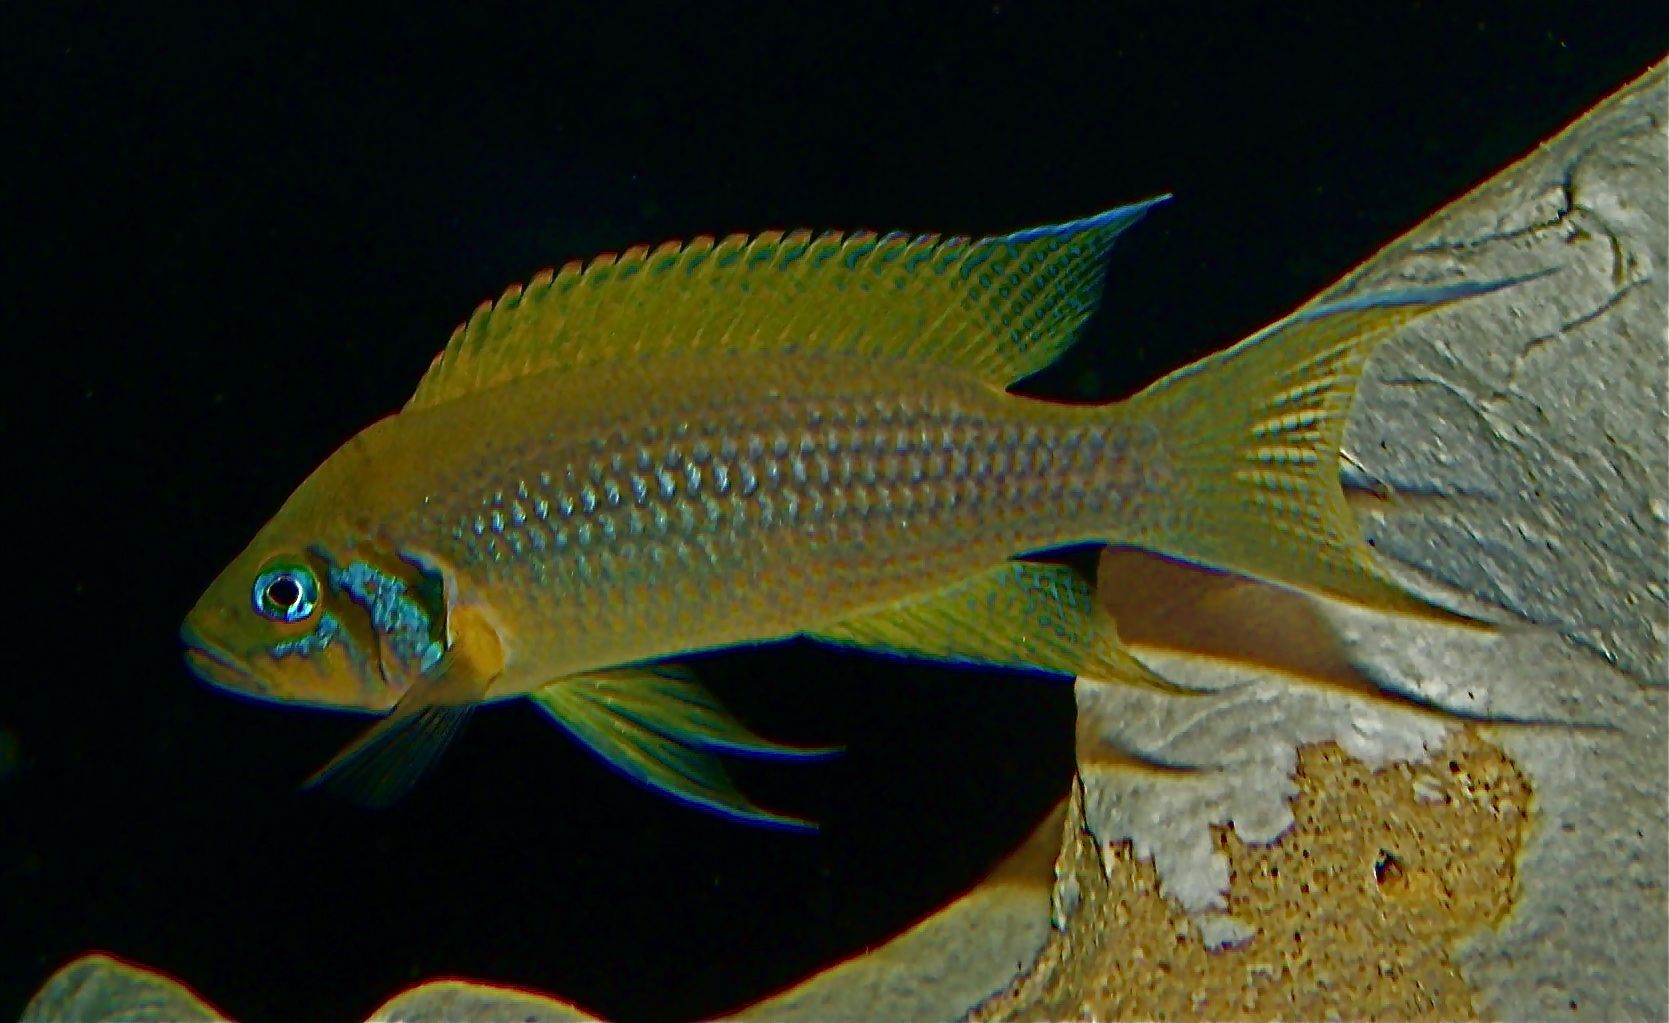 A glittering beauty is an apistogram of ramirezi and its contents in a home aquarium